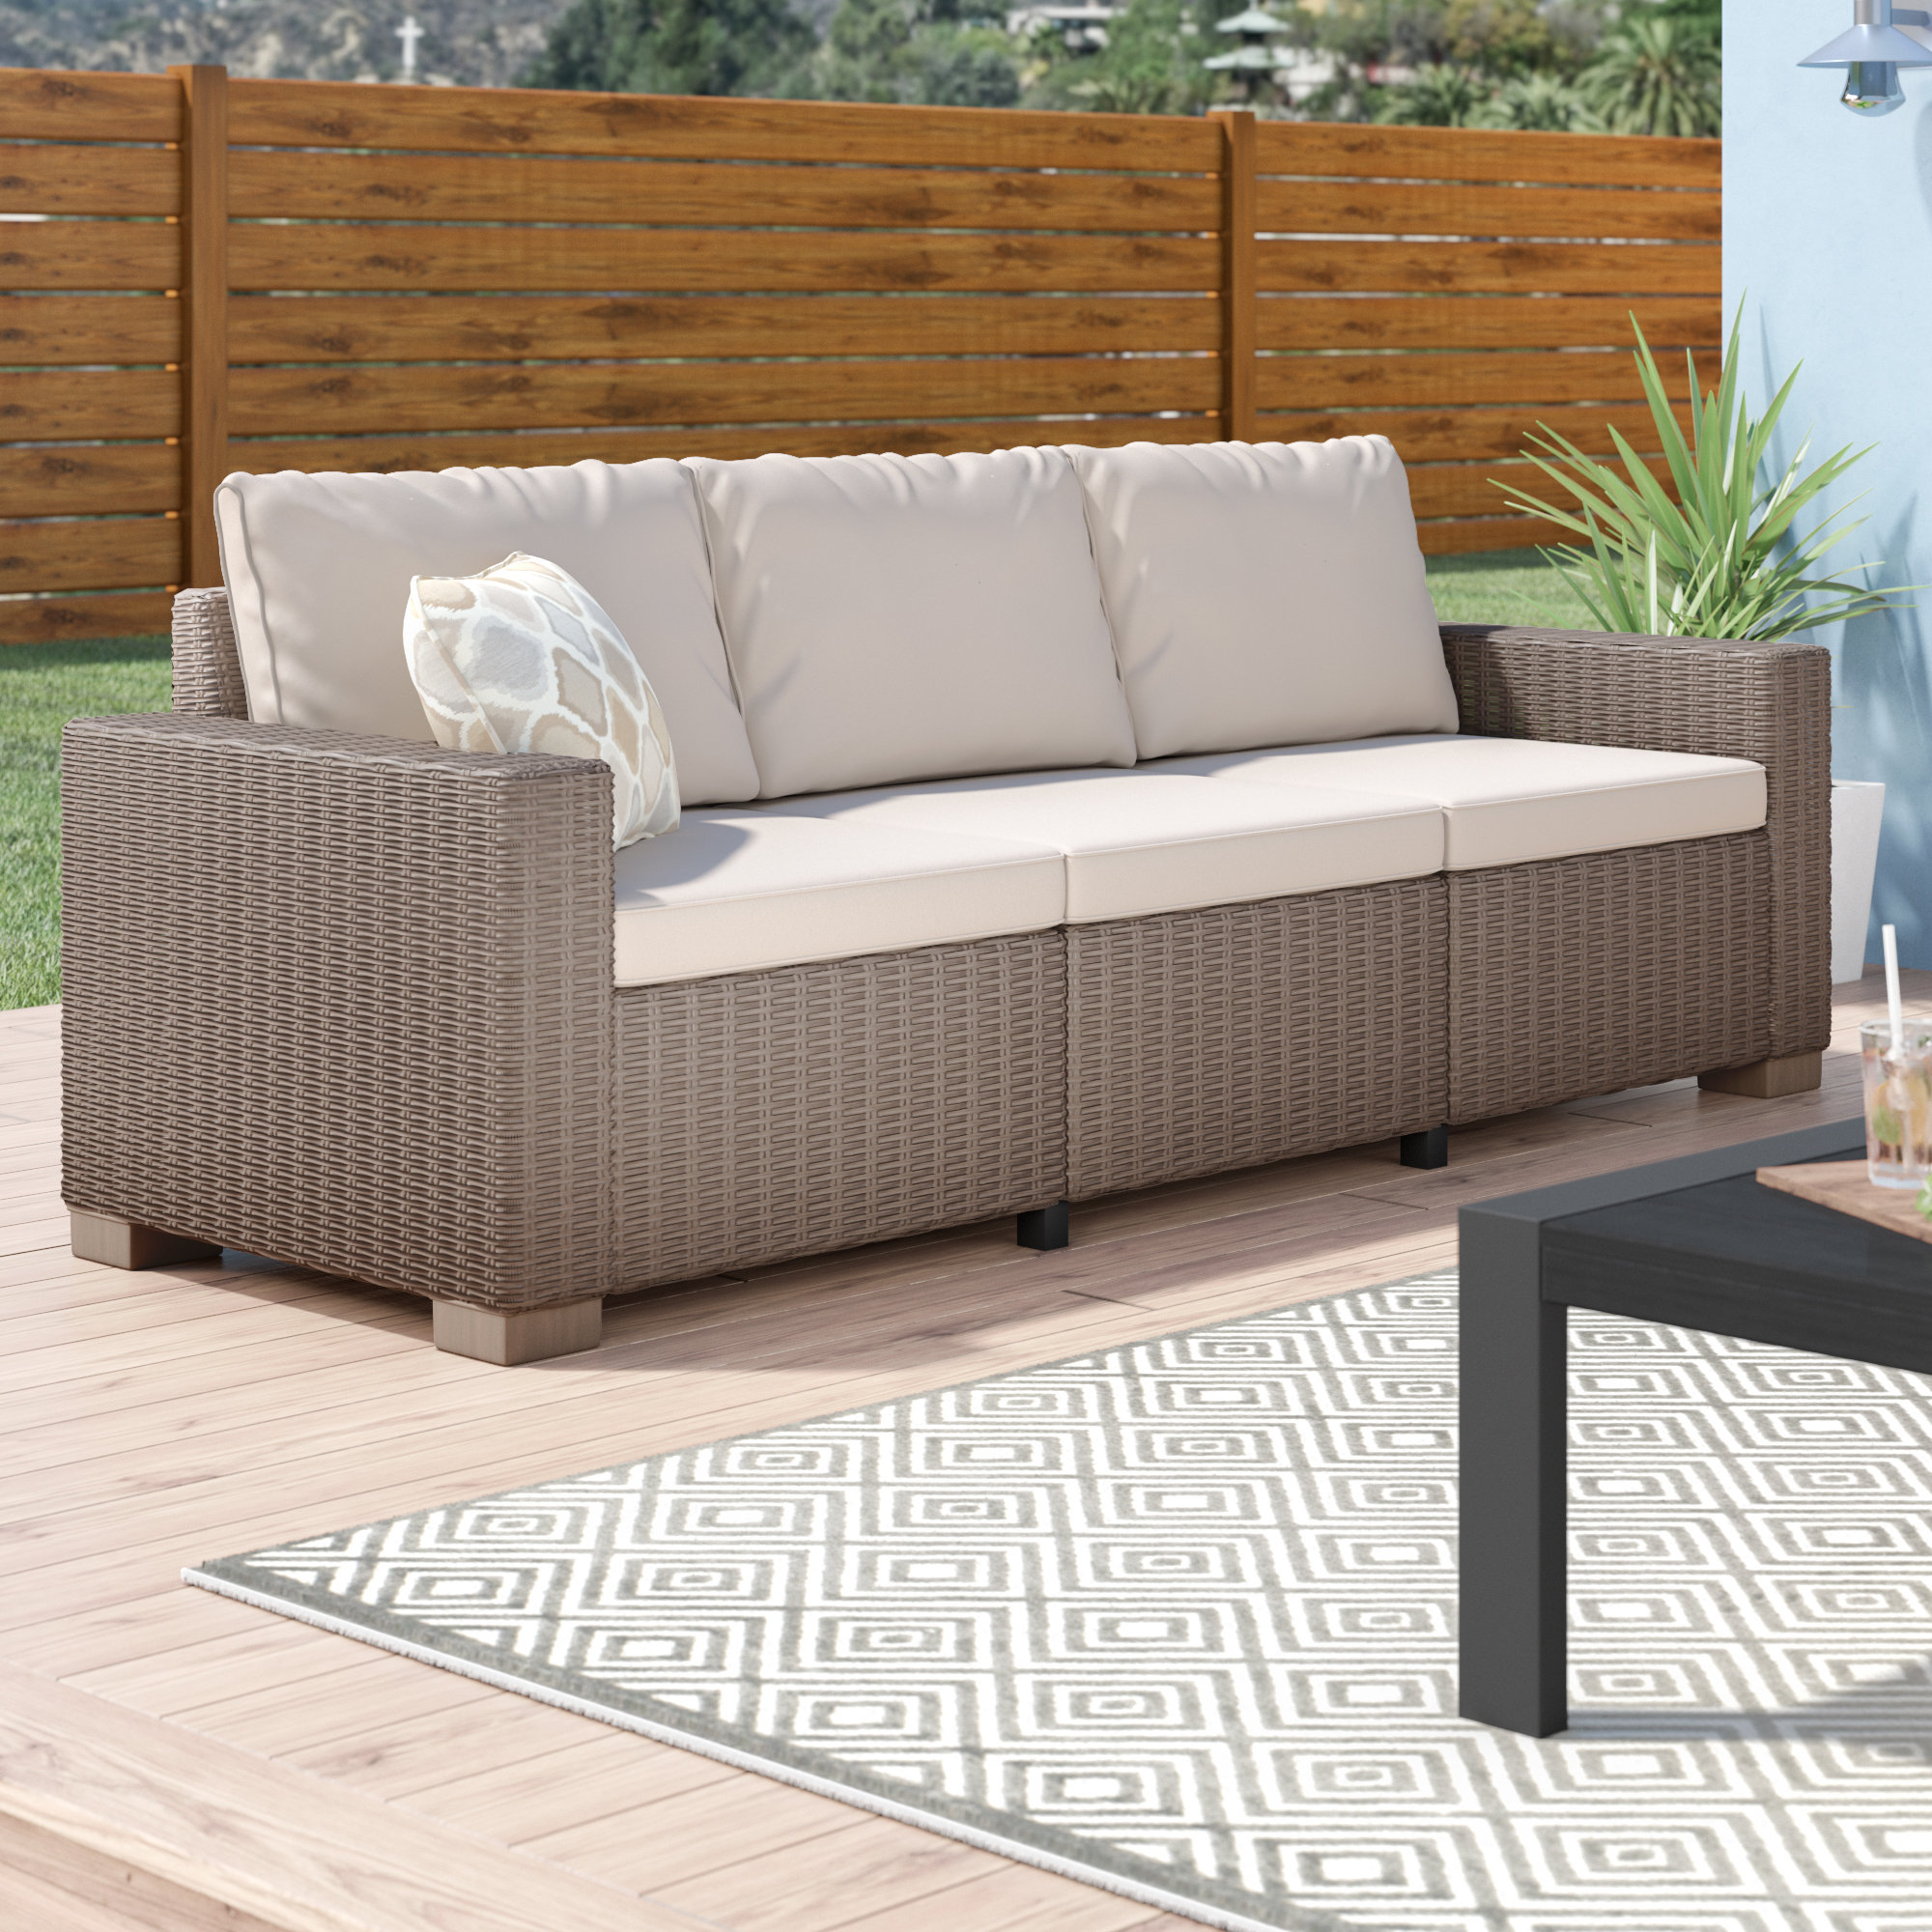 Outdoor Sofas & Loveseats You'll Love In  (View 11 of 20)